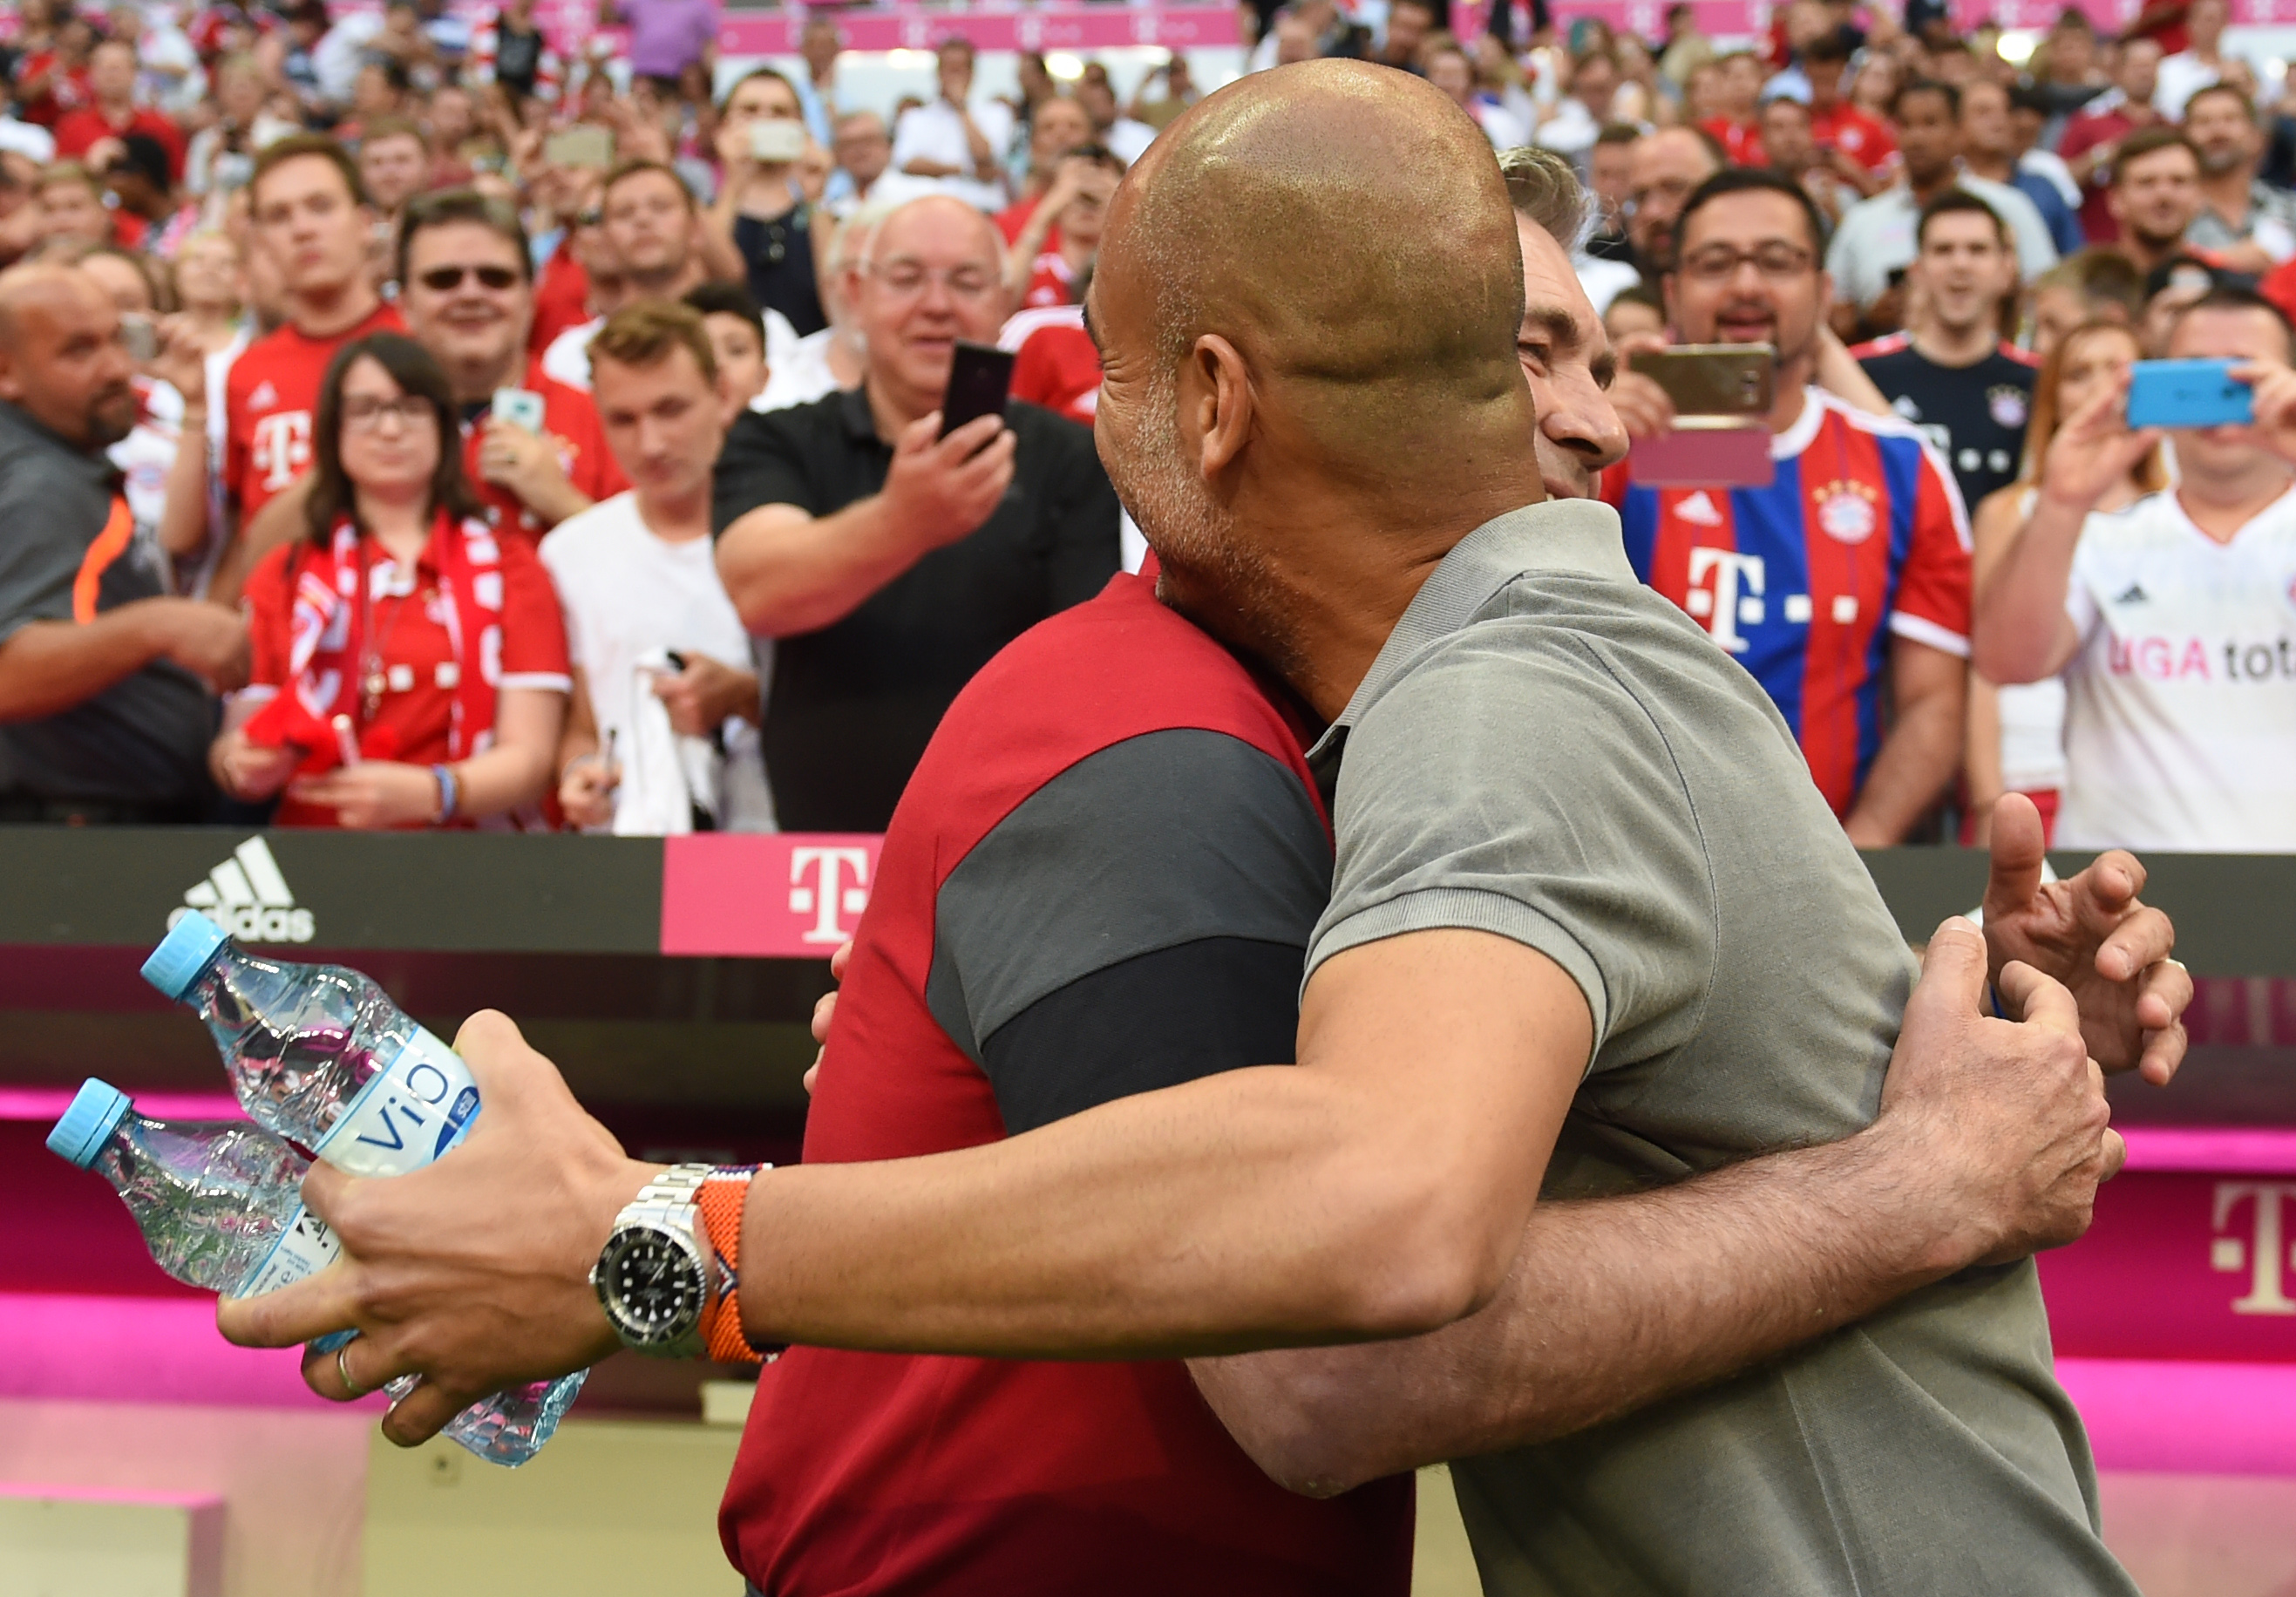 Bayern Munich's Italian headcoach Carlo Ancelotti (L) embraces Manchester's Spanish headcoach Pep Guardiola prior to a friendly soccer match between the German first division Bundesliga club FC Bayern Munich and the Premier League football team Manchester City in Munich, southern Germany, on July 20, 2016. / AFP / CHRISTOF STACHE (Photo credit should read CHRISTOF STACHE/AFP/Getty Images)